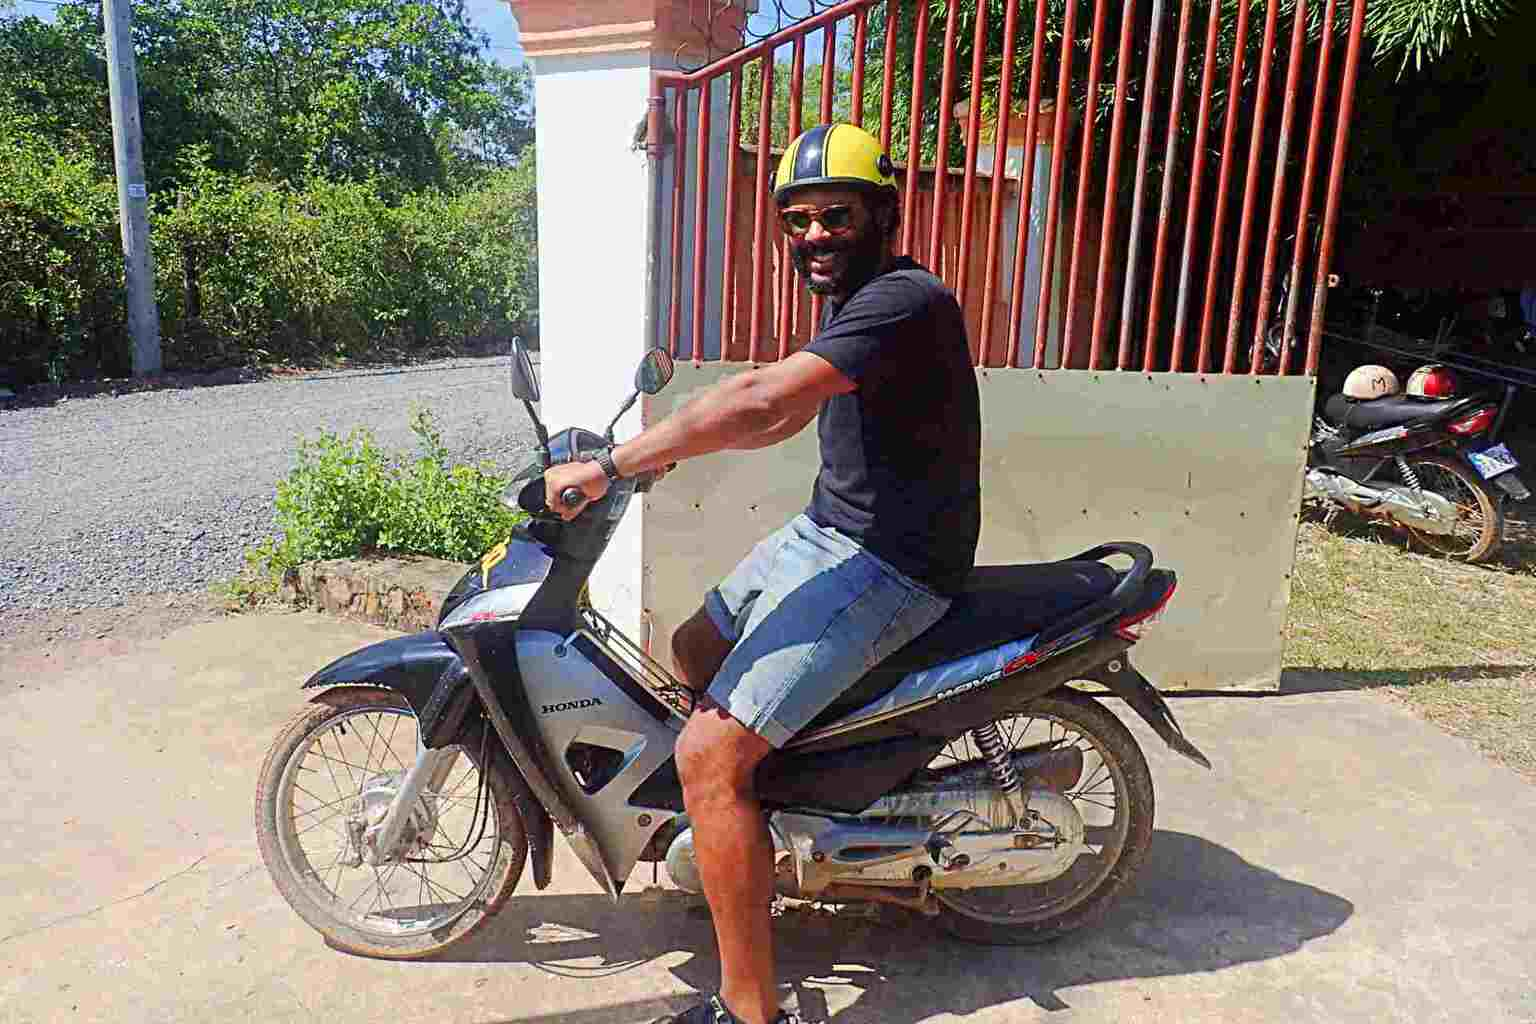 How To Stay Safe When Renting A Motorcycle in South East Asia